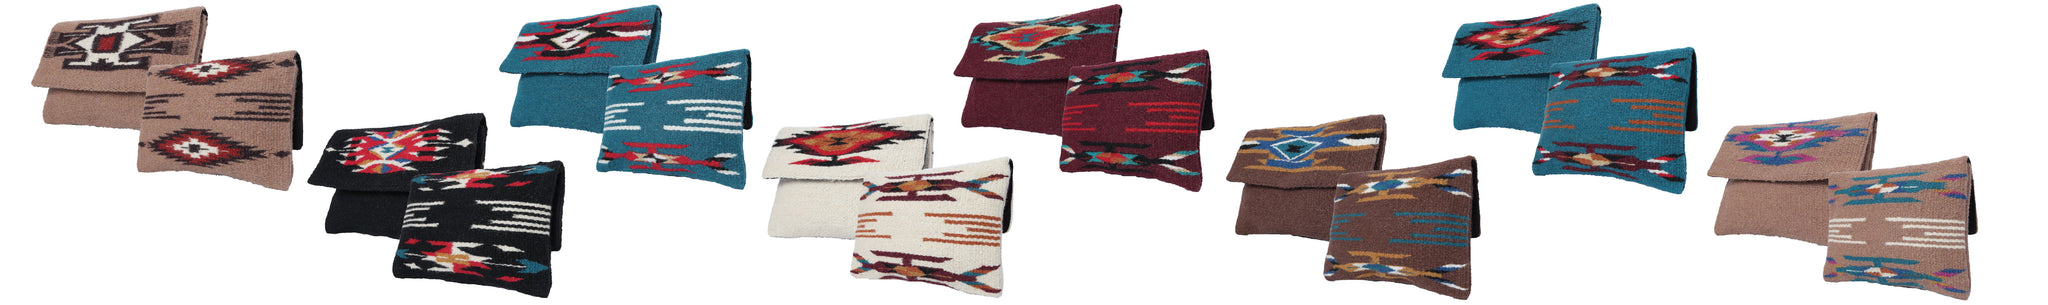 Southwest Chimayo-Style Clutch Purse from El Paso Saddleblanket Comapny